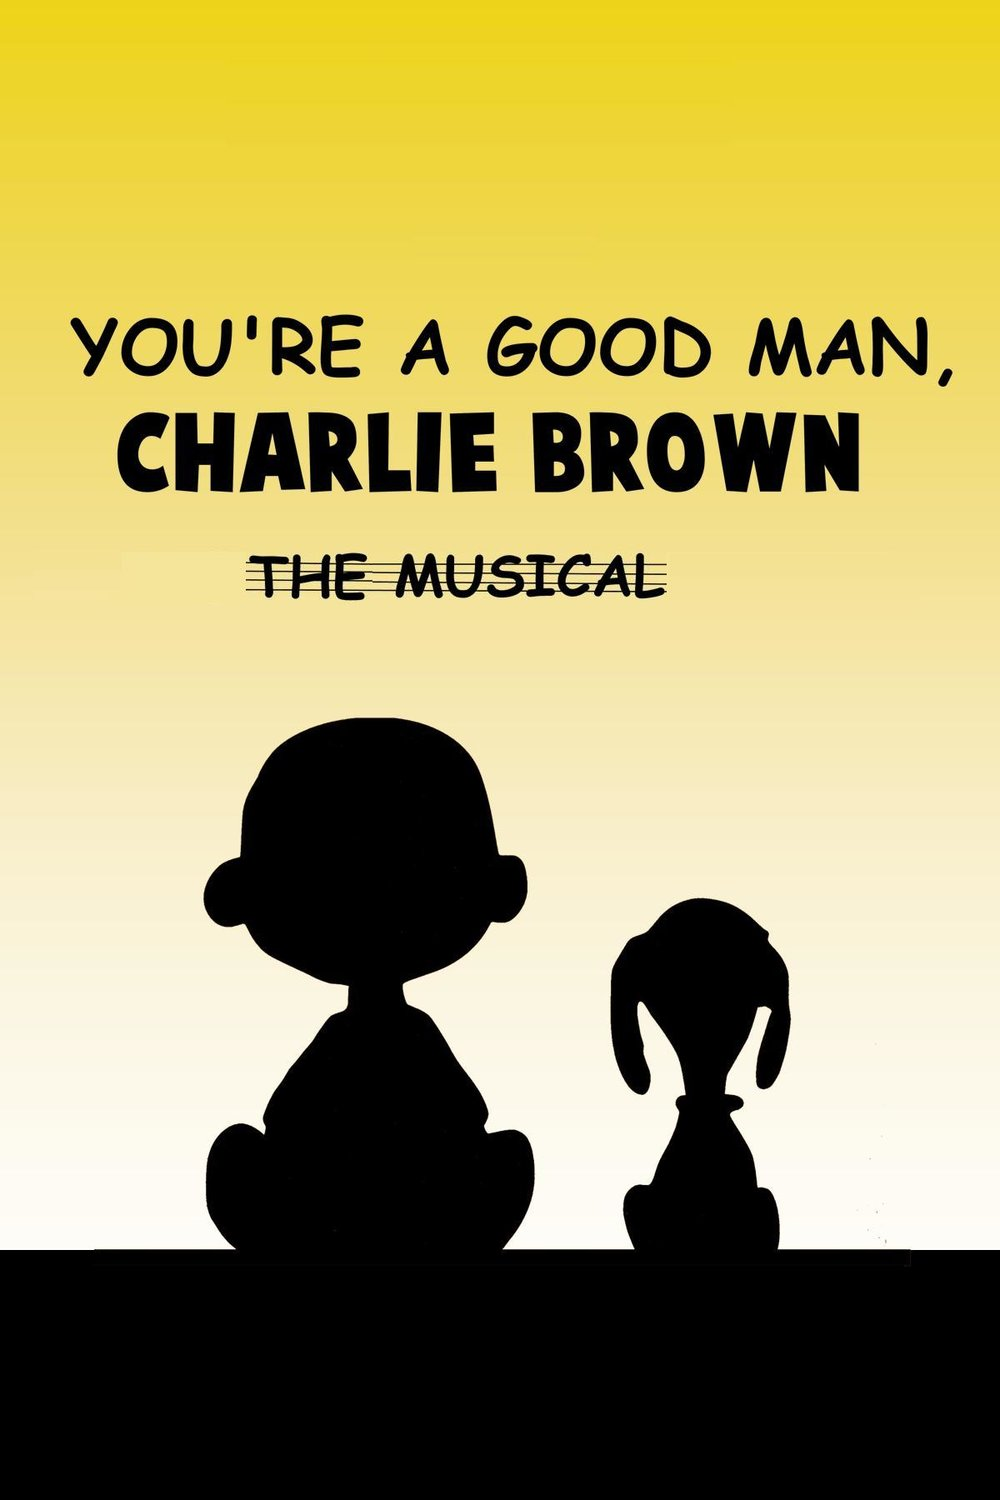 YOU'RE A GOOD MAN, CHARLIE BROWN, THE MUSICAL